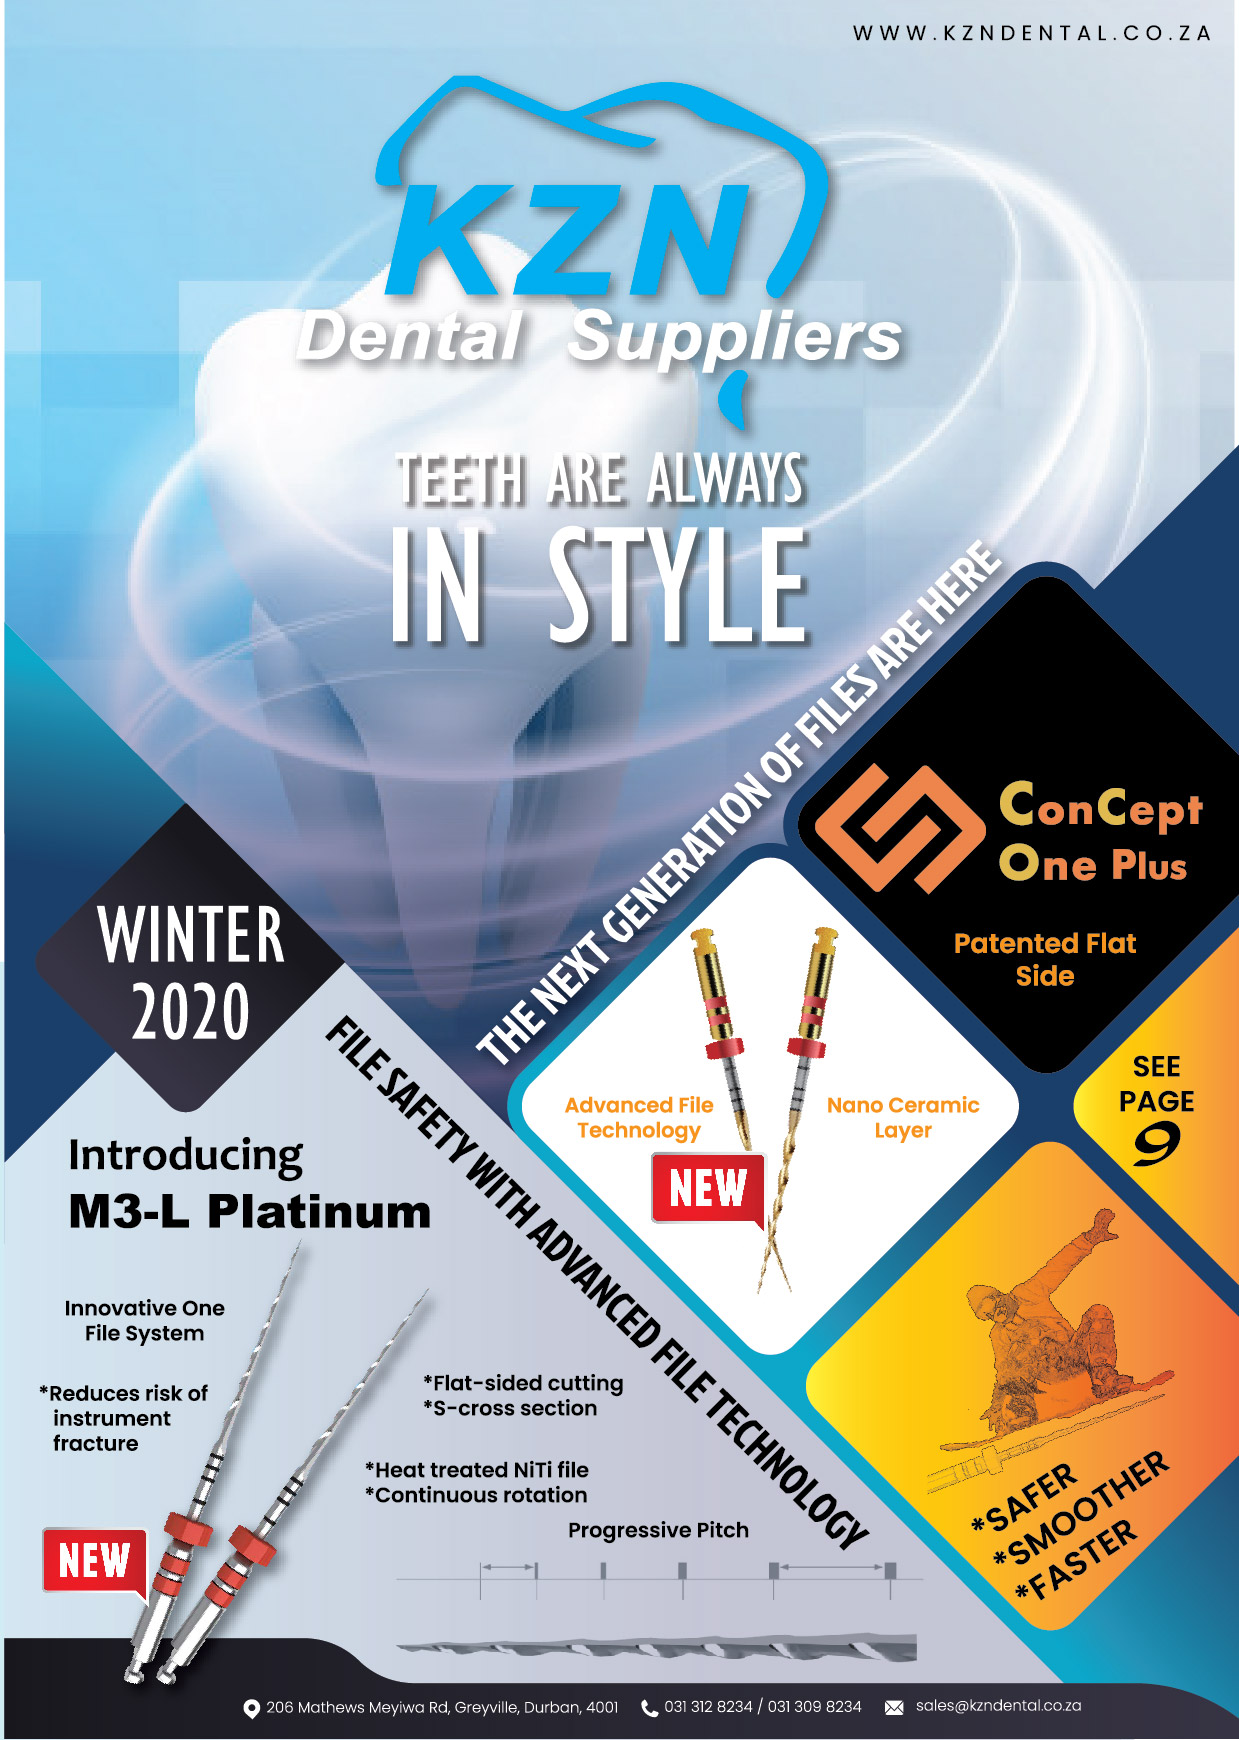 KZN_DENTAL_WINTER_BOOKLET_A3F_190520_V27-01.jpg - 429.09 kB